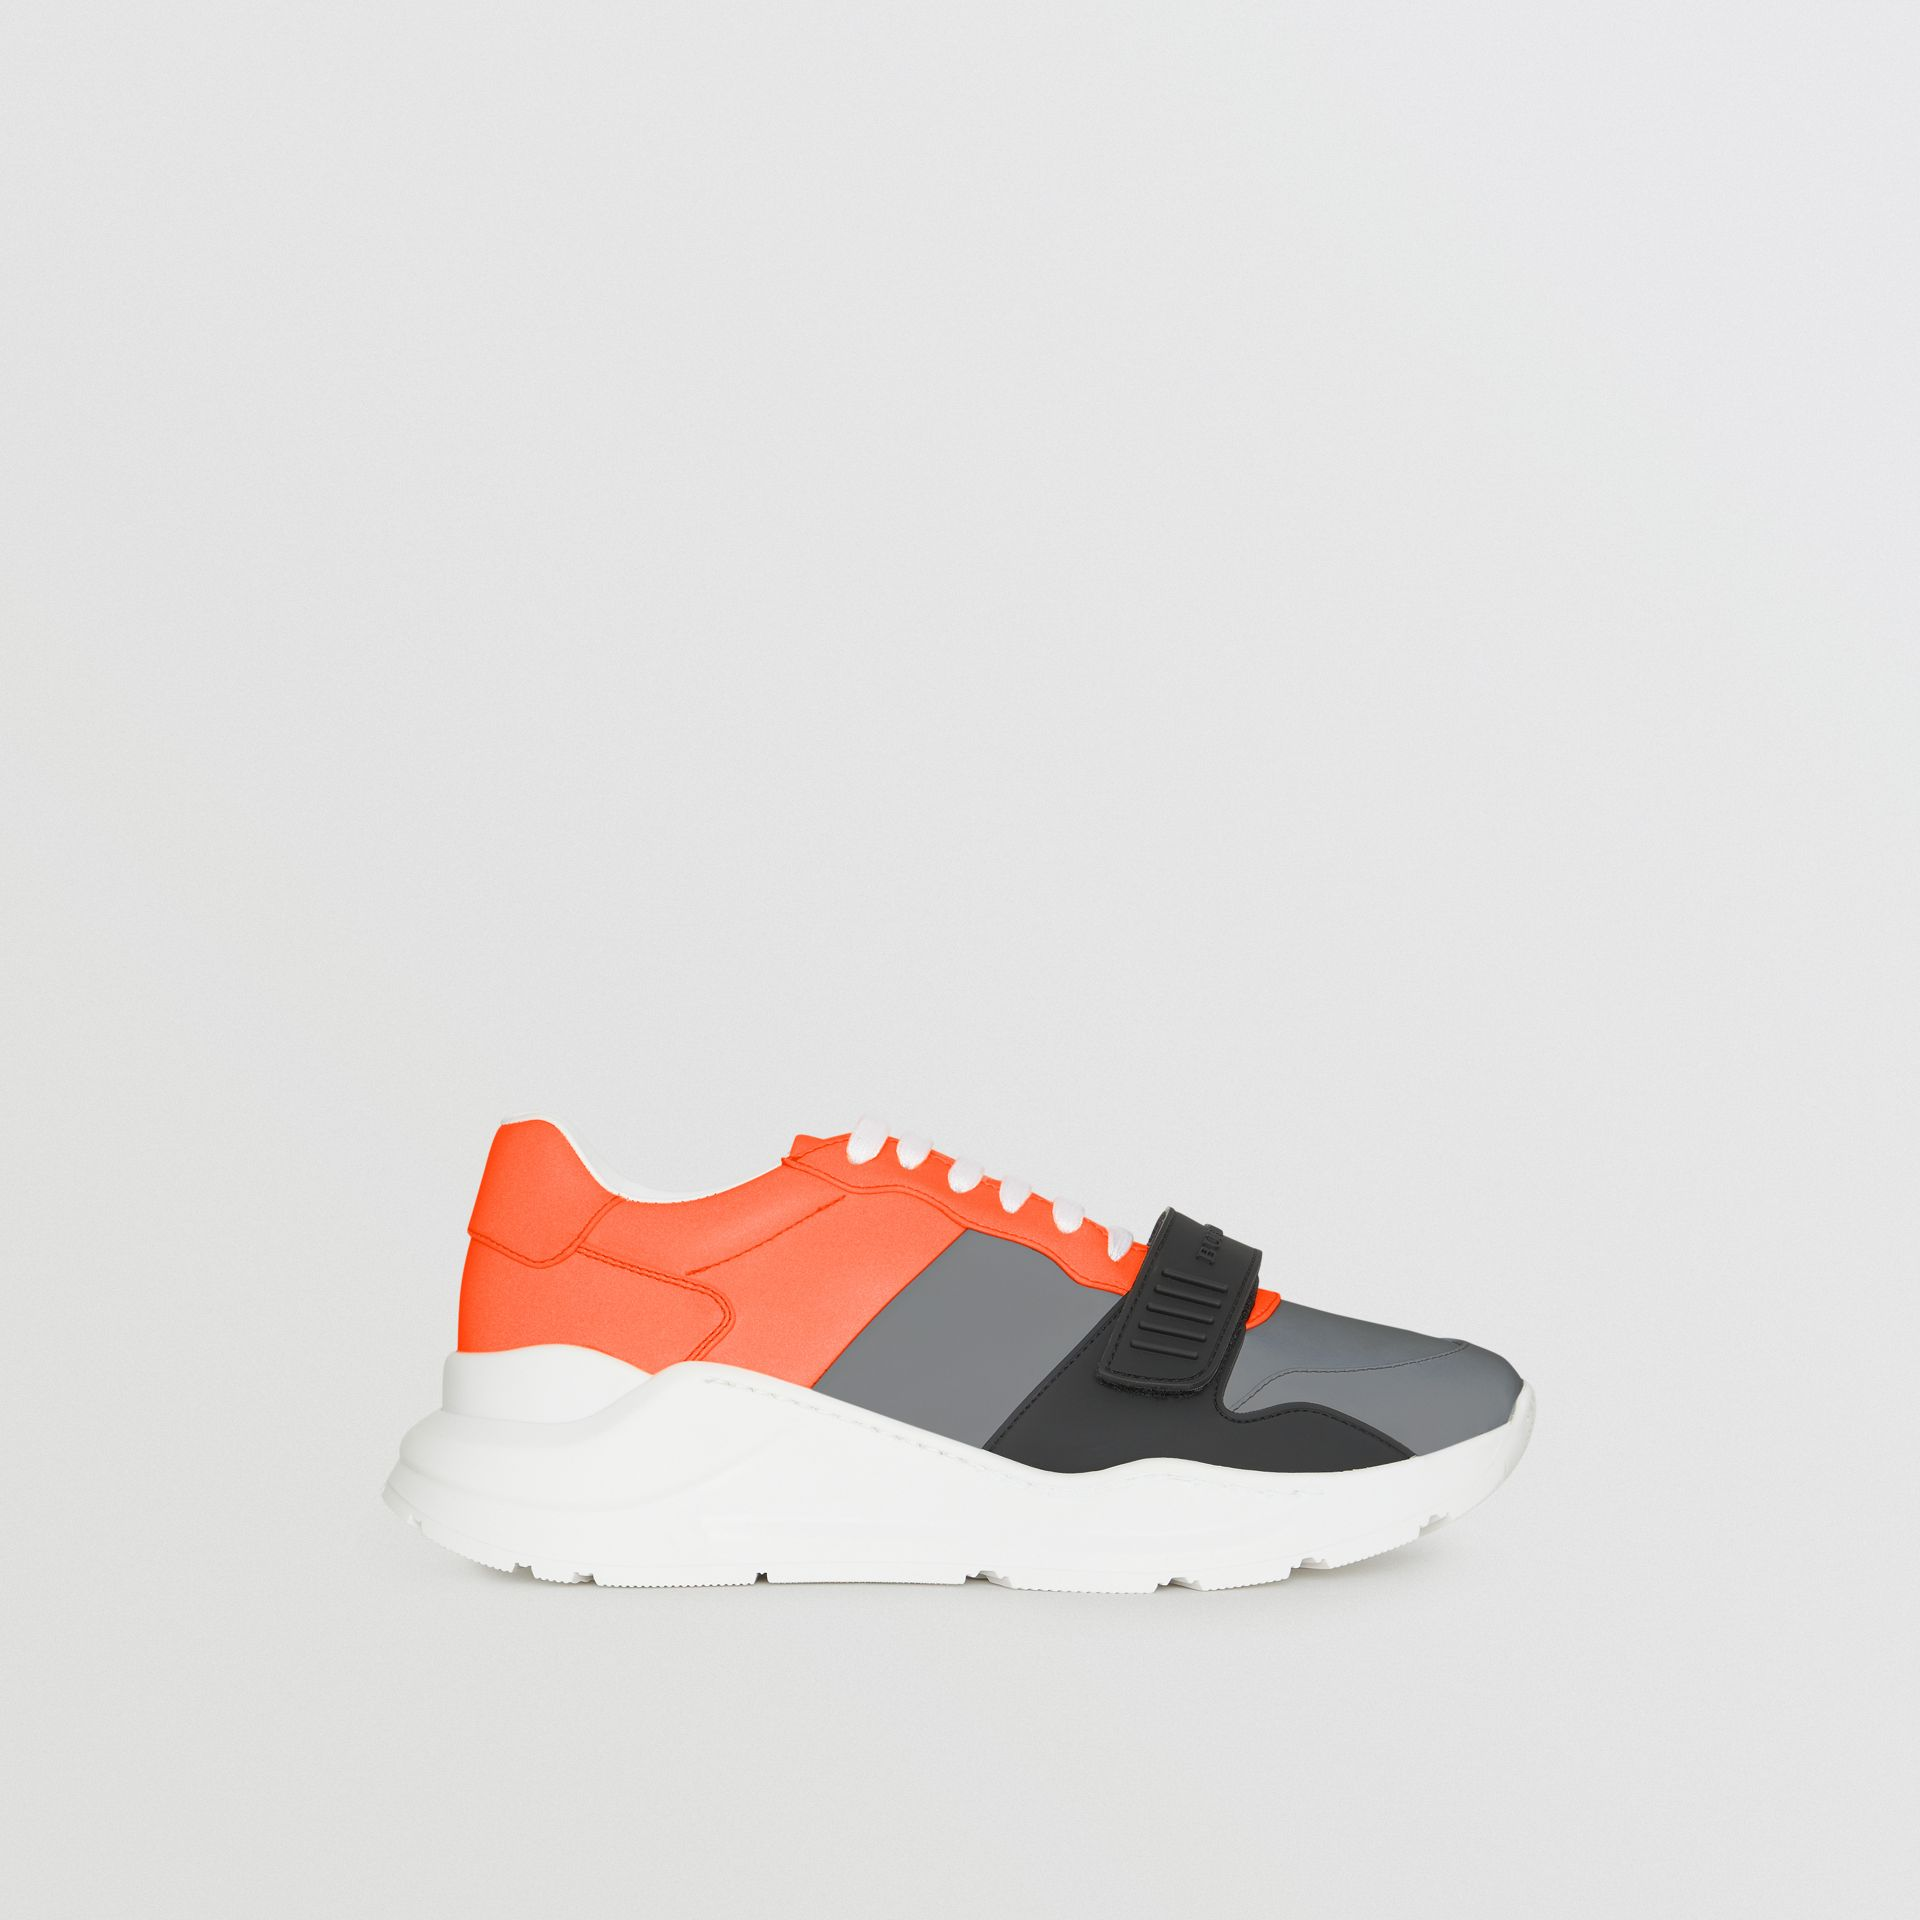 Sportschuhe im Colour-Blocking-Design (Silbergrau/orange) - Herren | Burberry - Galerie-Bild 5